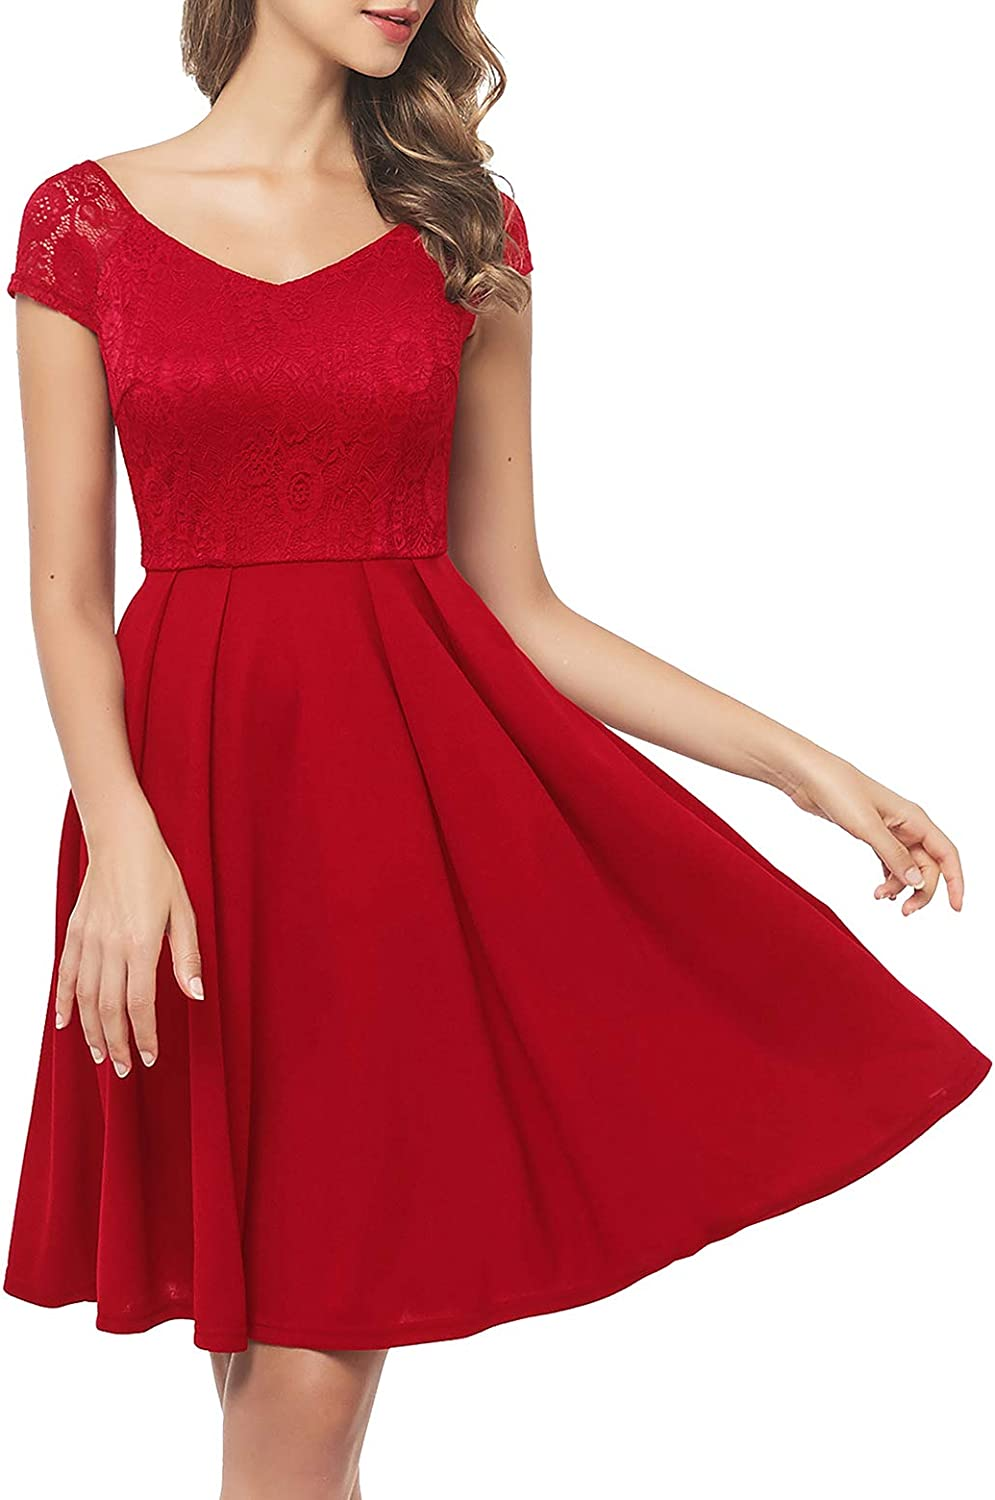 Bbonlinedress Women's Embroidery Lace Cocktail Dress High Waist Bridesmaid Wedding Guest Dresses with Pockets